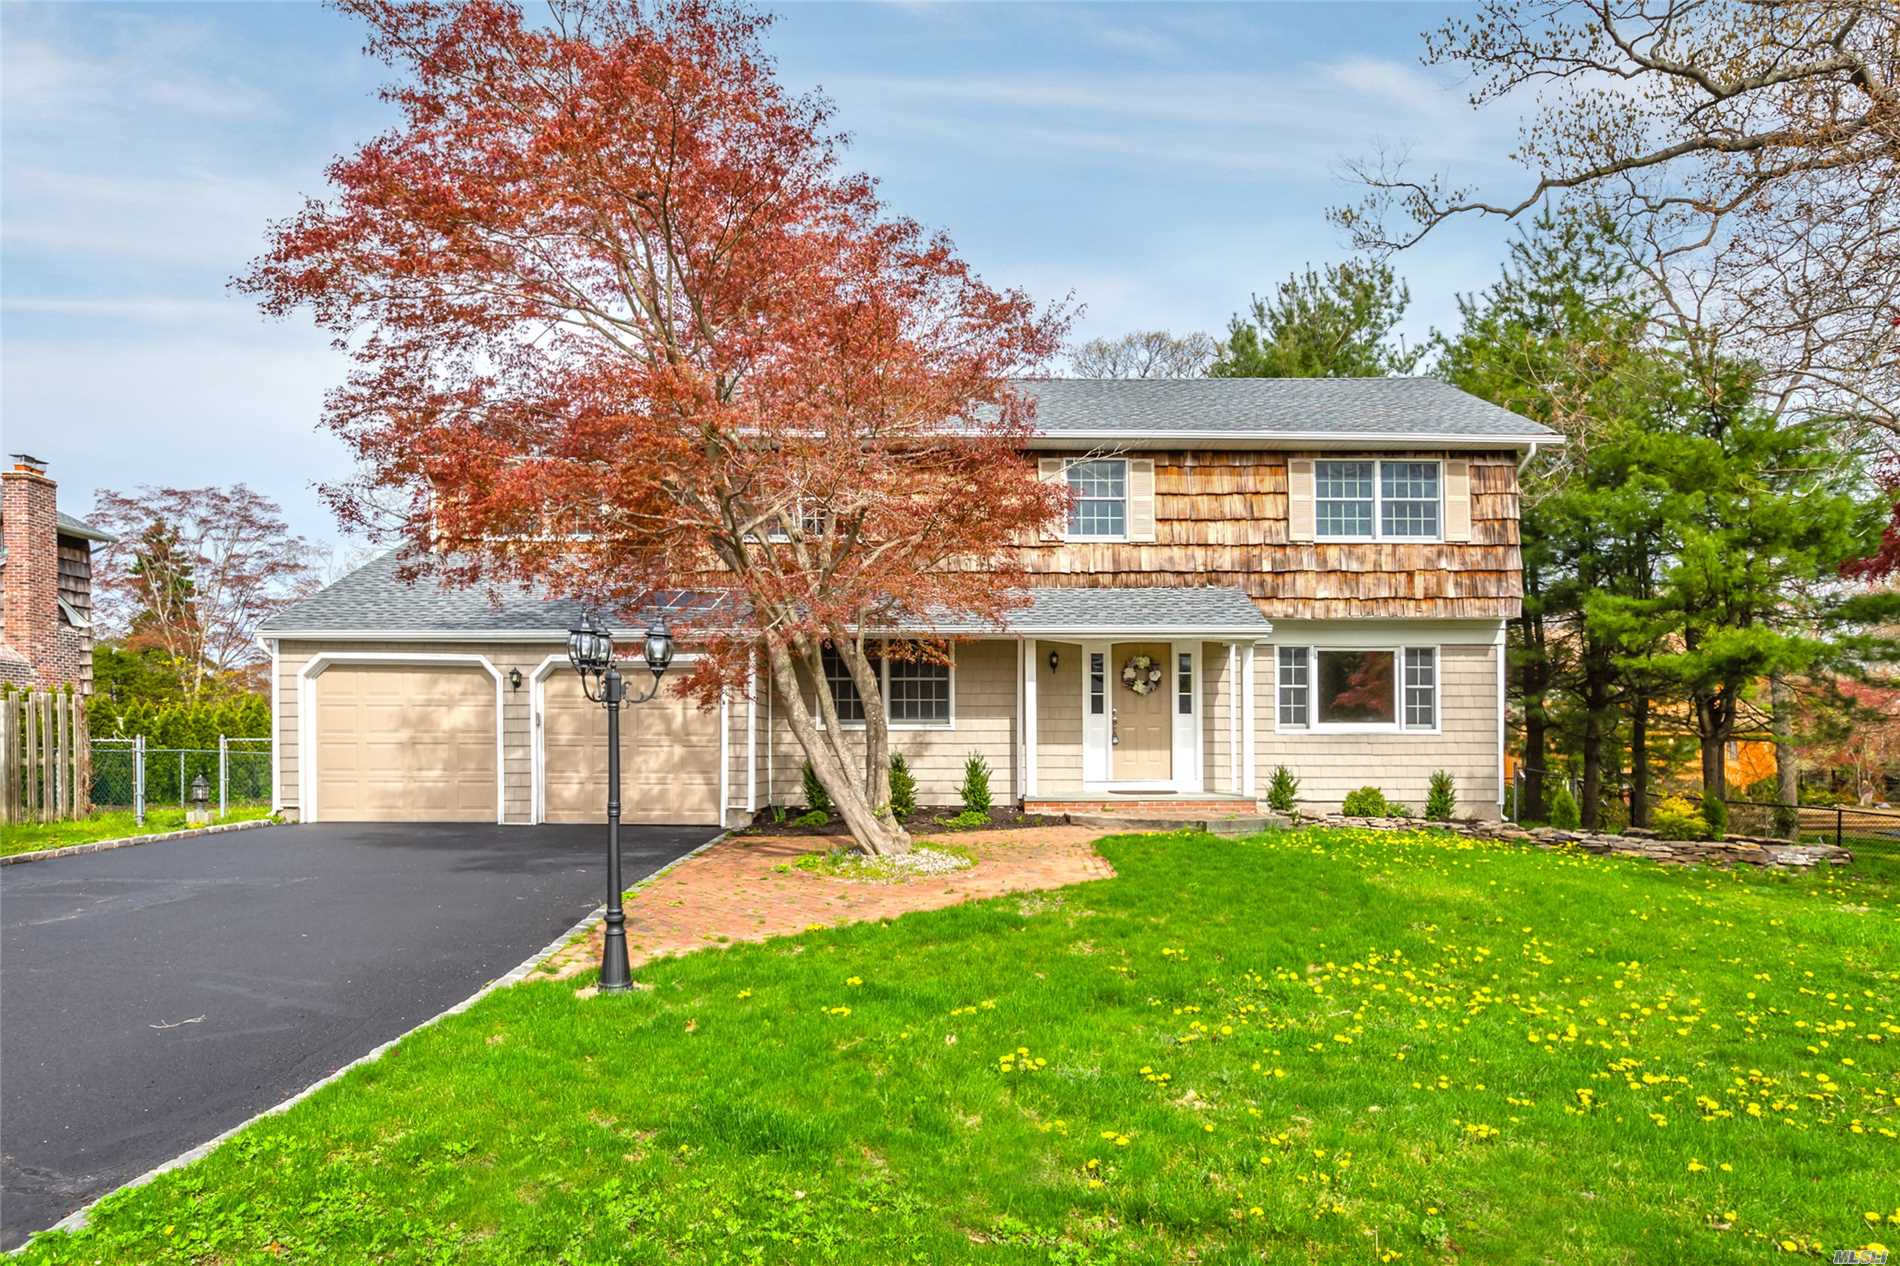 19 Sherry Dr - Setauket, New York